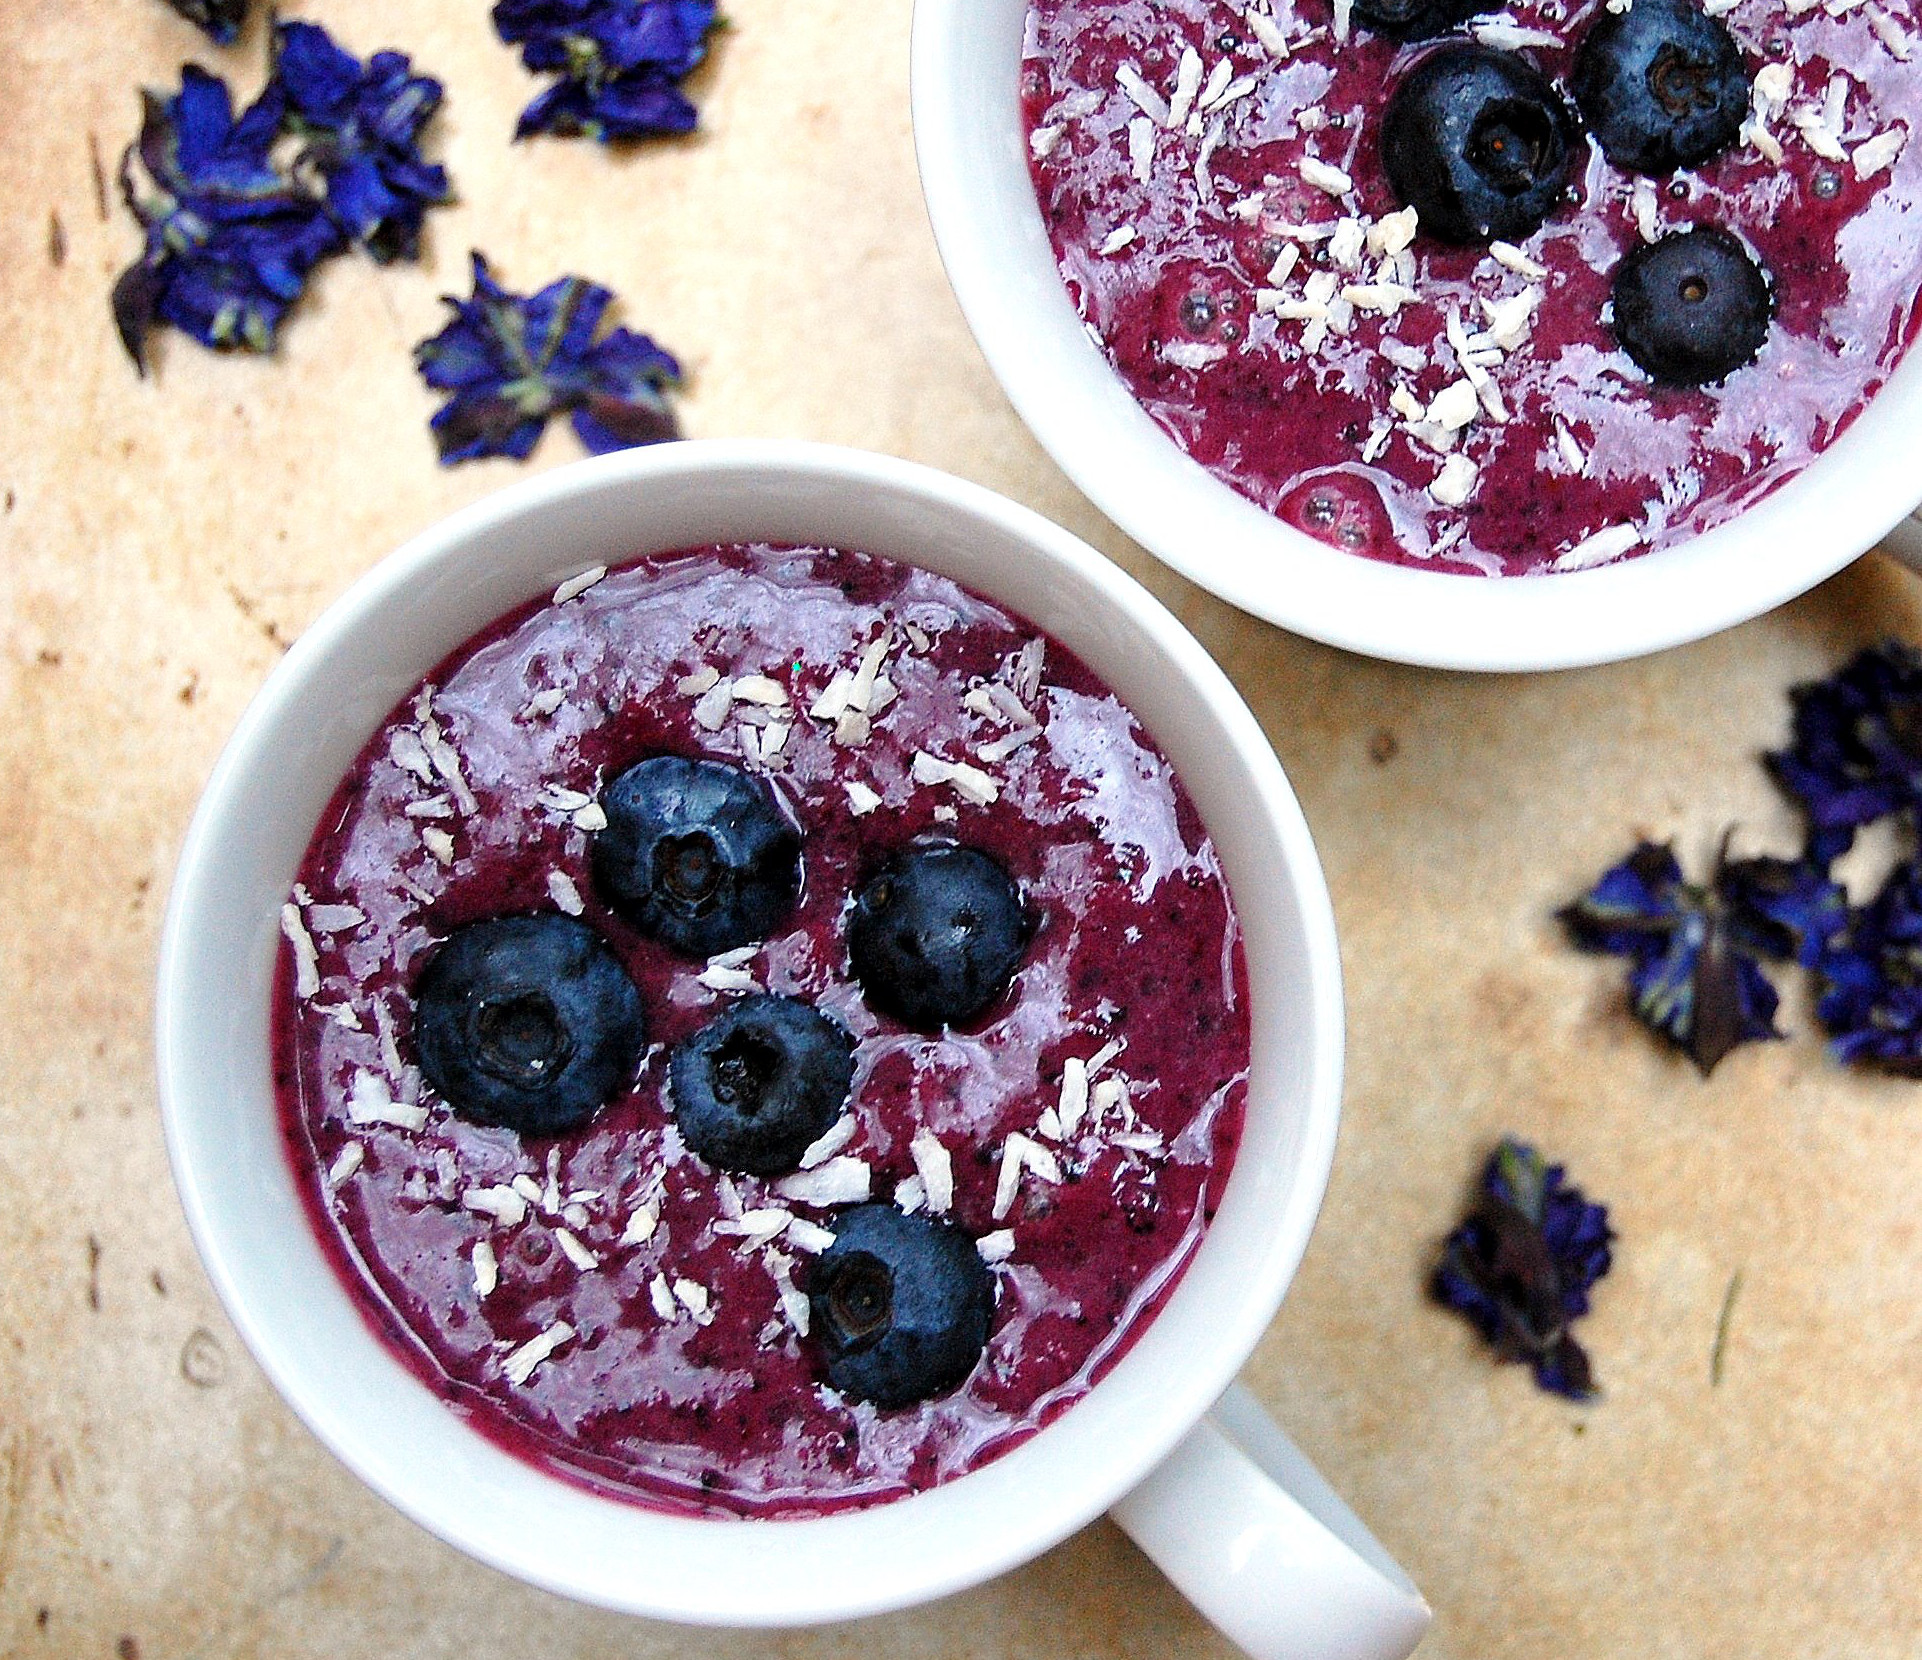 Ways to Use Blueberries in Your Summer Meals